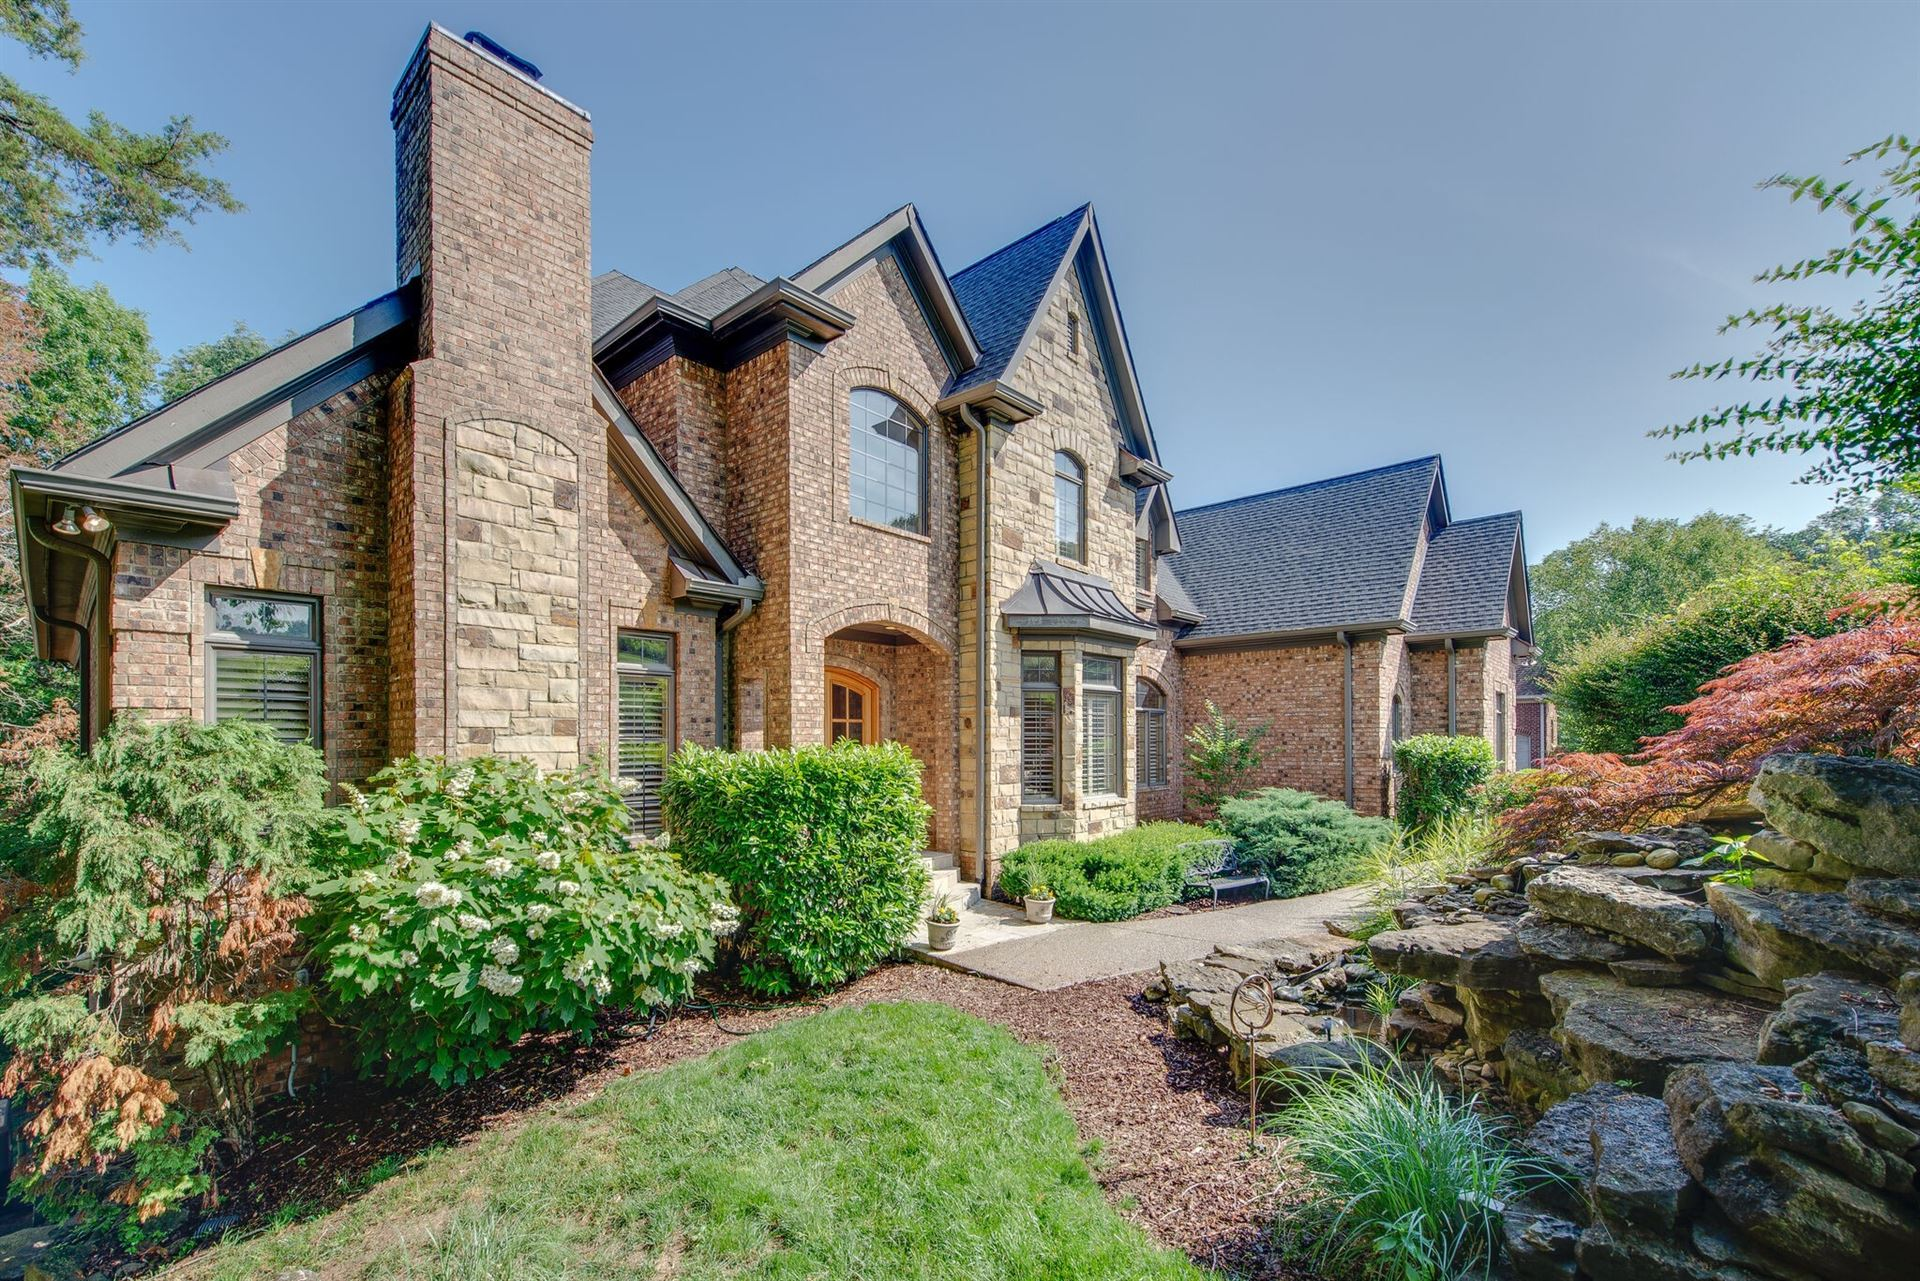 Photo of 6416 Arden Ct, Brentwood, TN 37027 (MLS # 2192606)